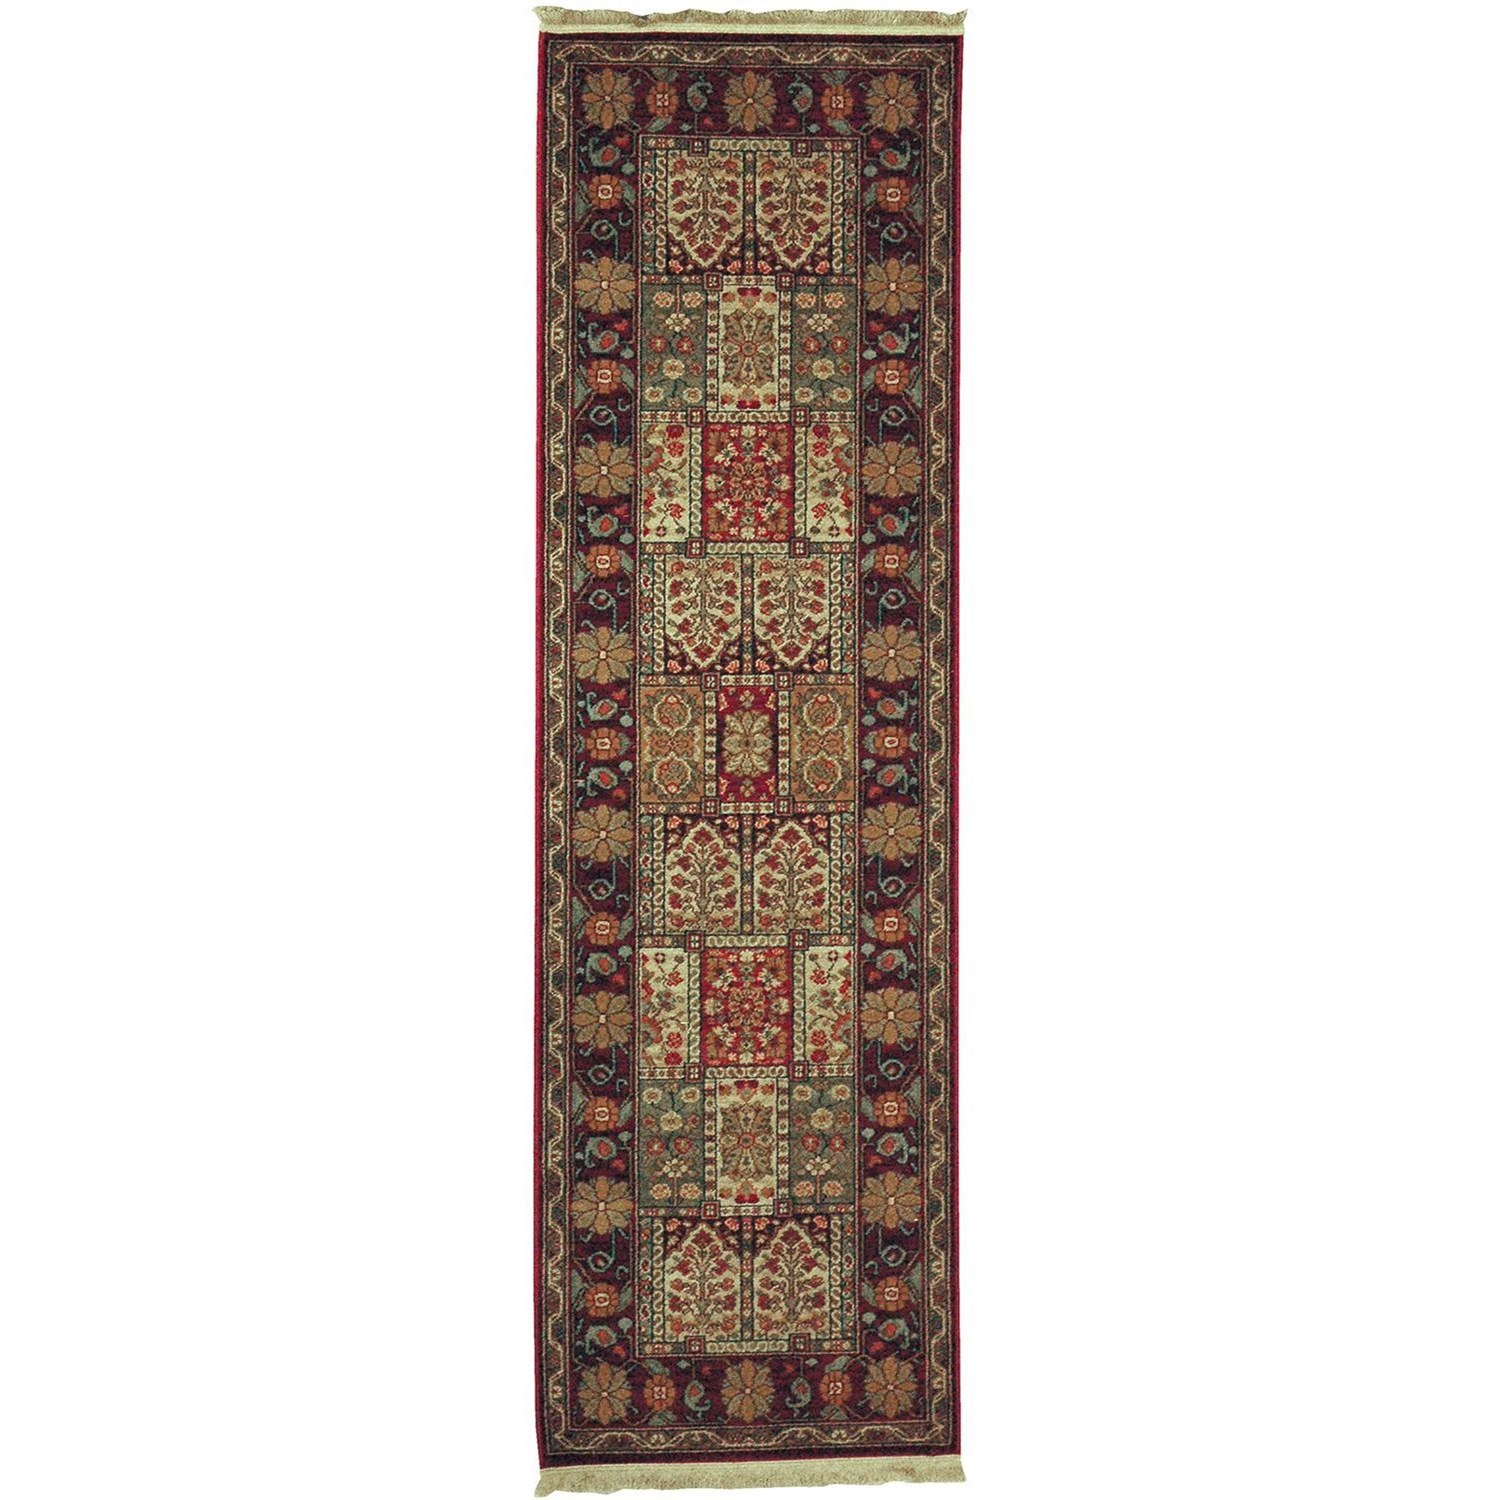 Karastan Rugs Antique Legends 2'6x8'6 Bakhtiyari Rug Runner - Item Number: 02200 00202 030102